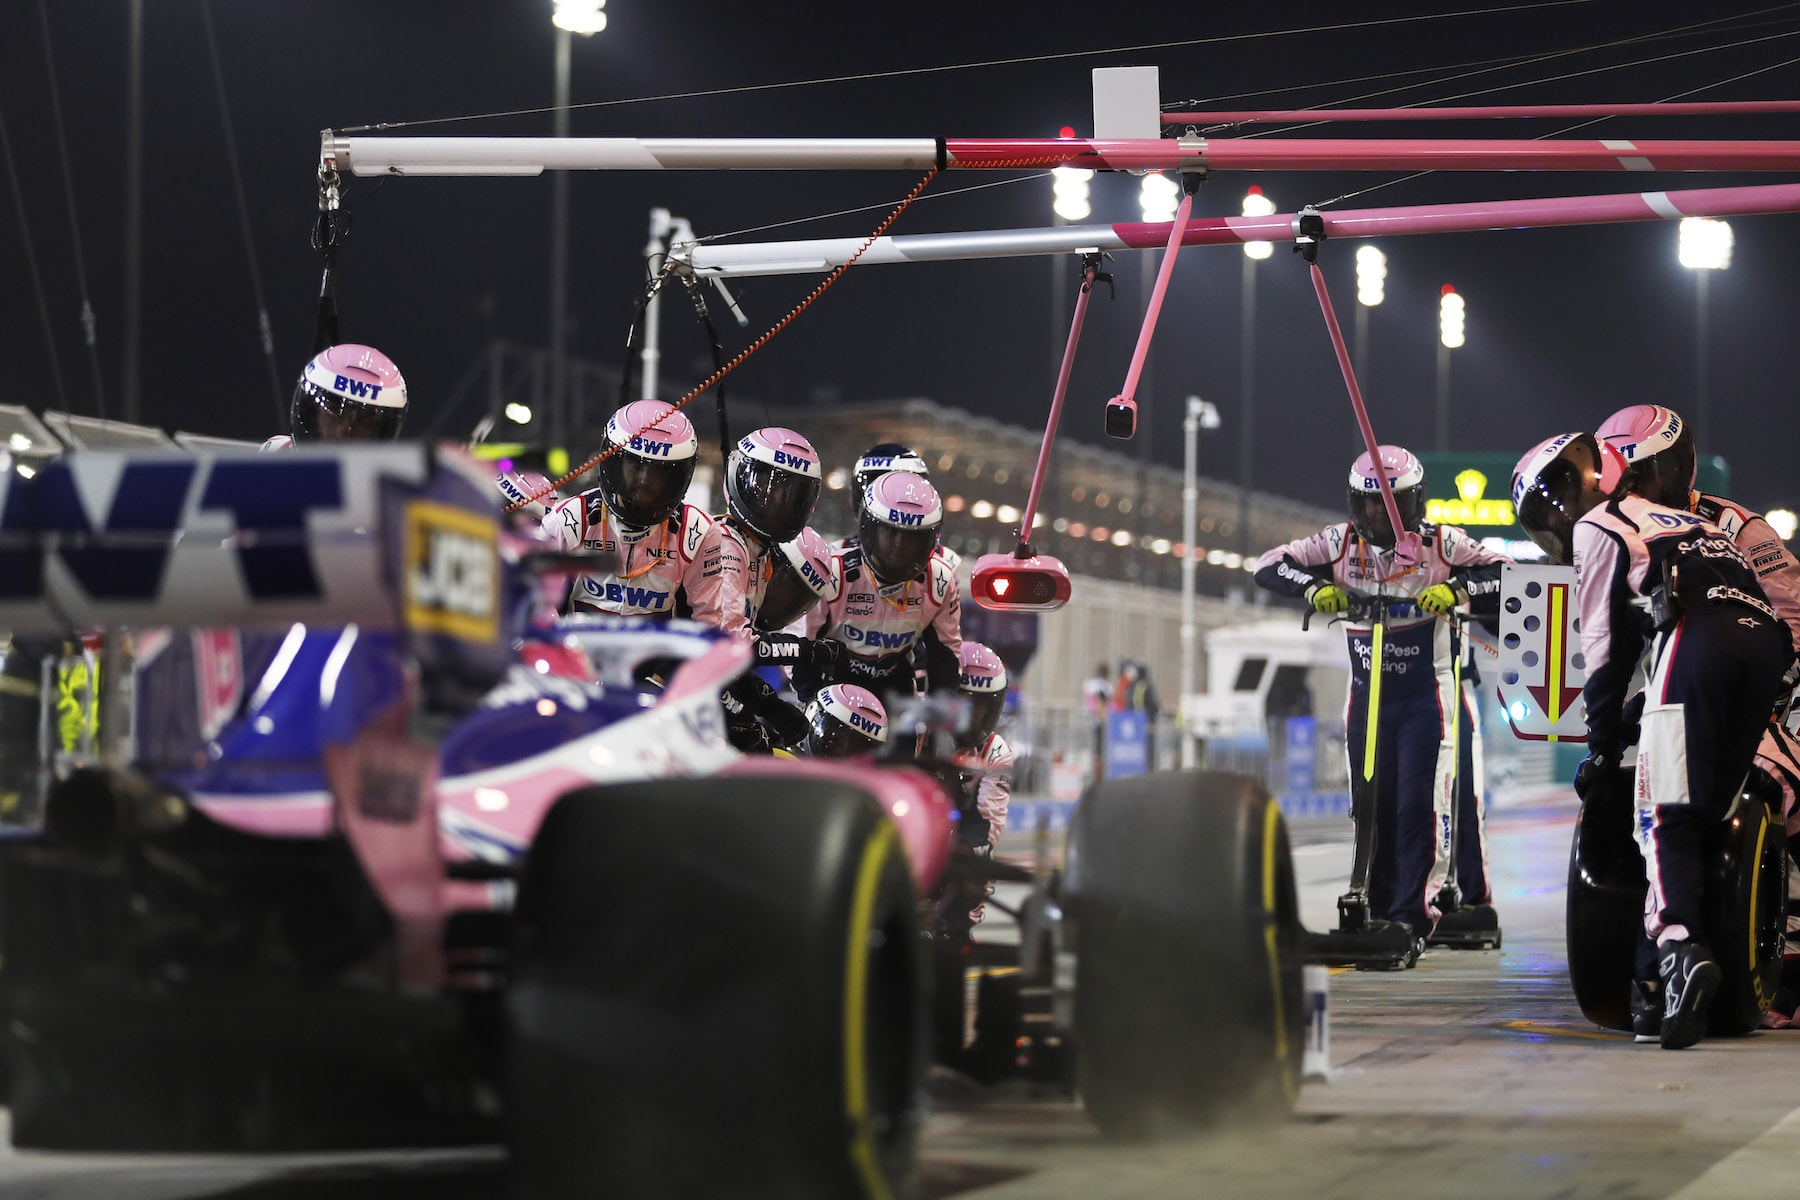 3 10 12 2019 Sergio Perez | Racing Point RP19 | 2019 Bahrain GP 1 copy.jpg